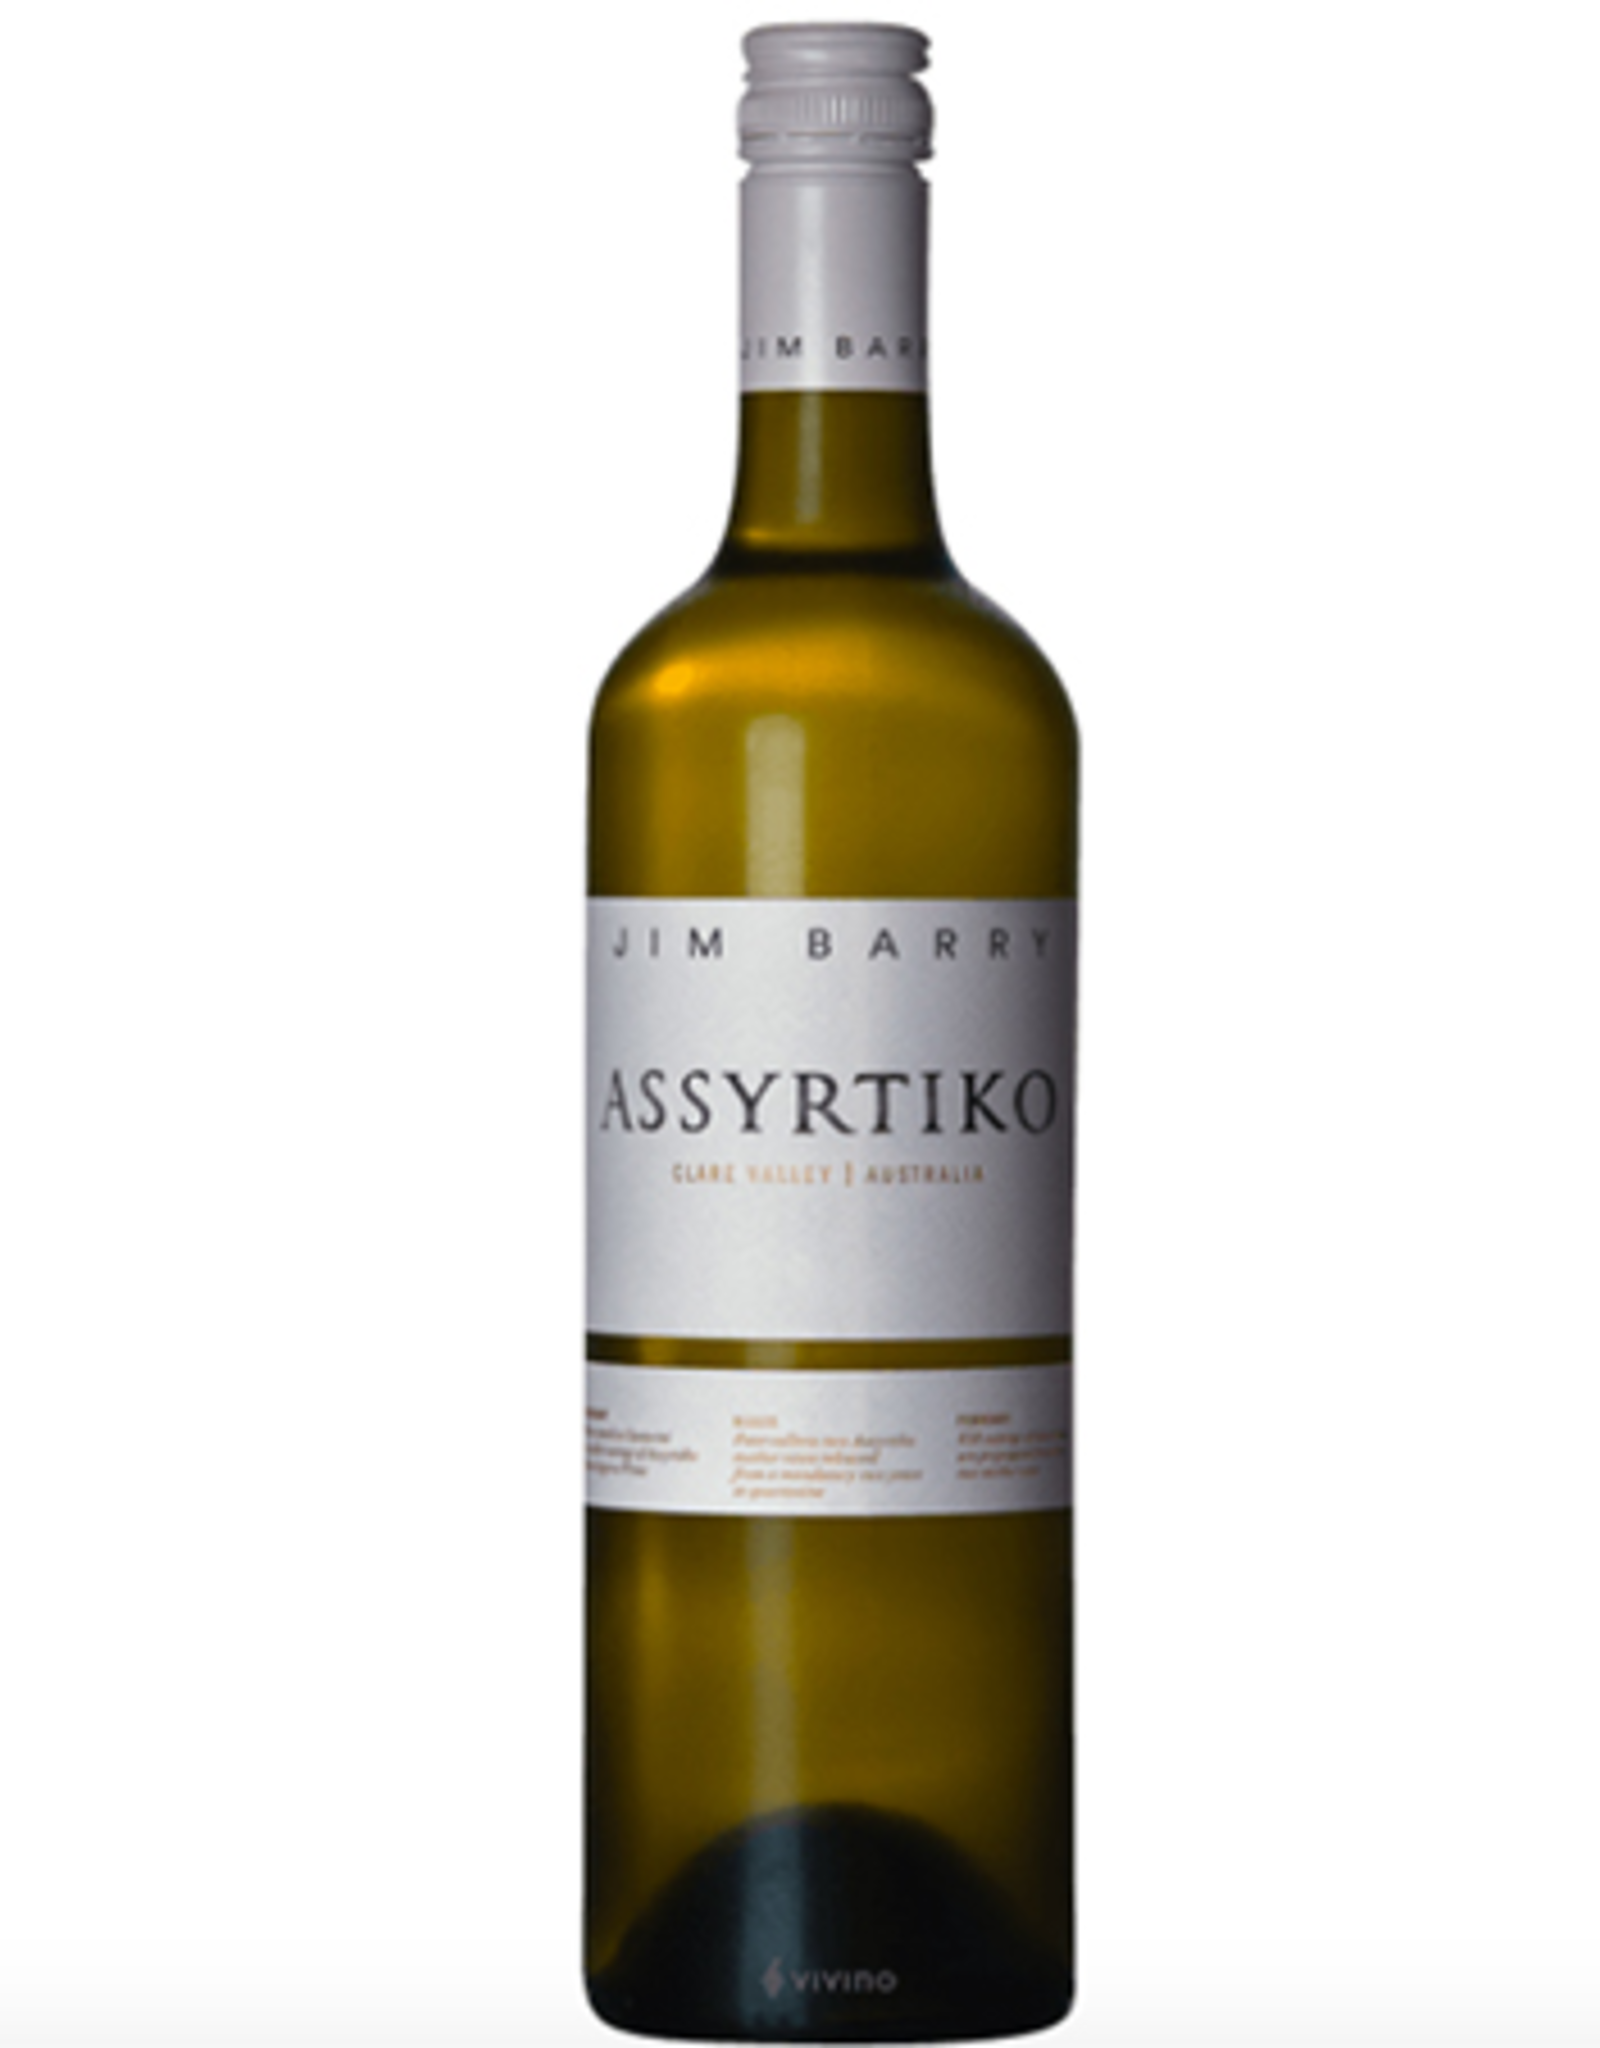 Jim Barry Assyrtiko Clare Valley 2018